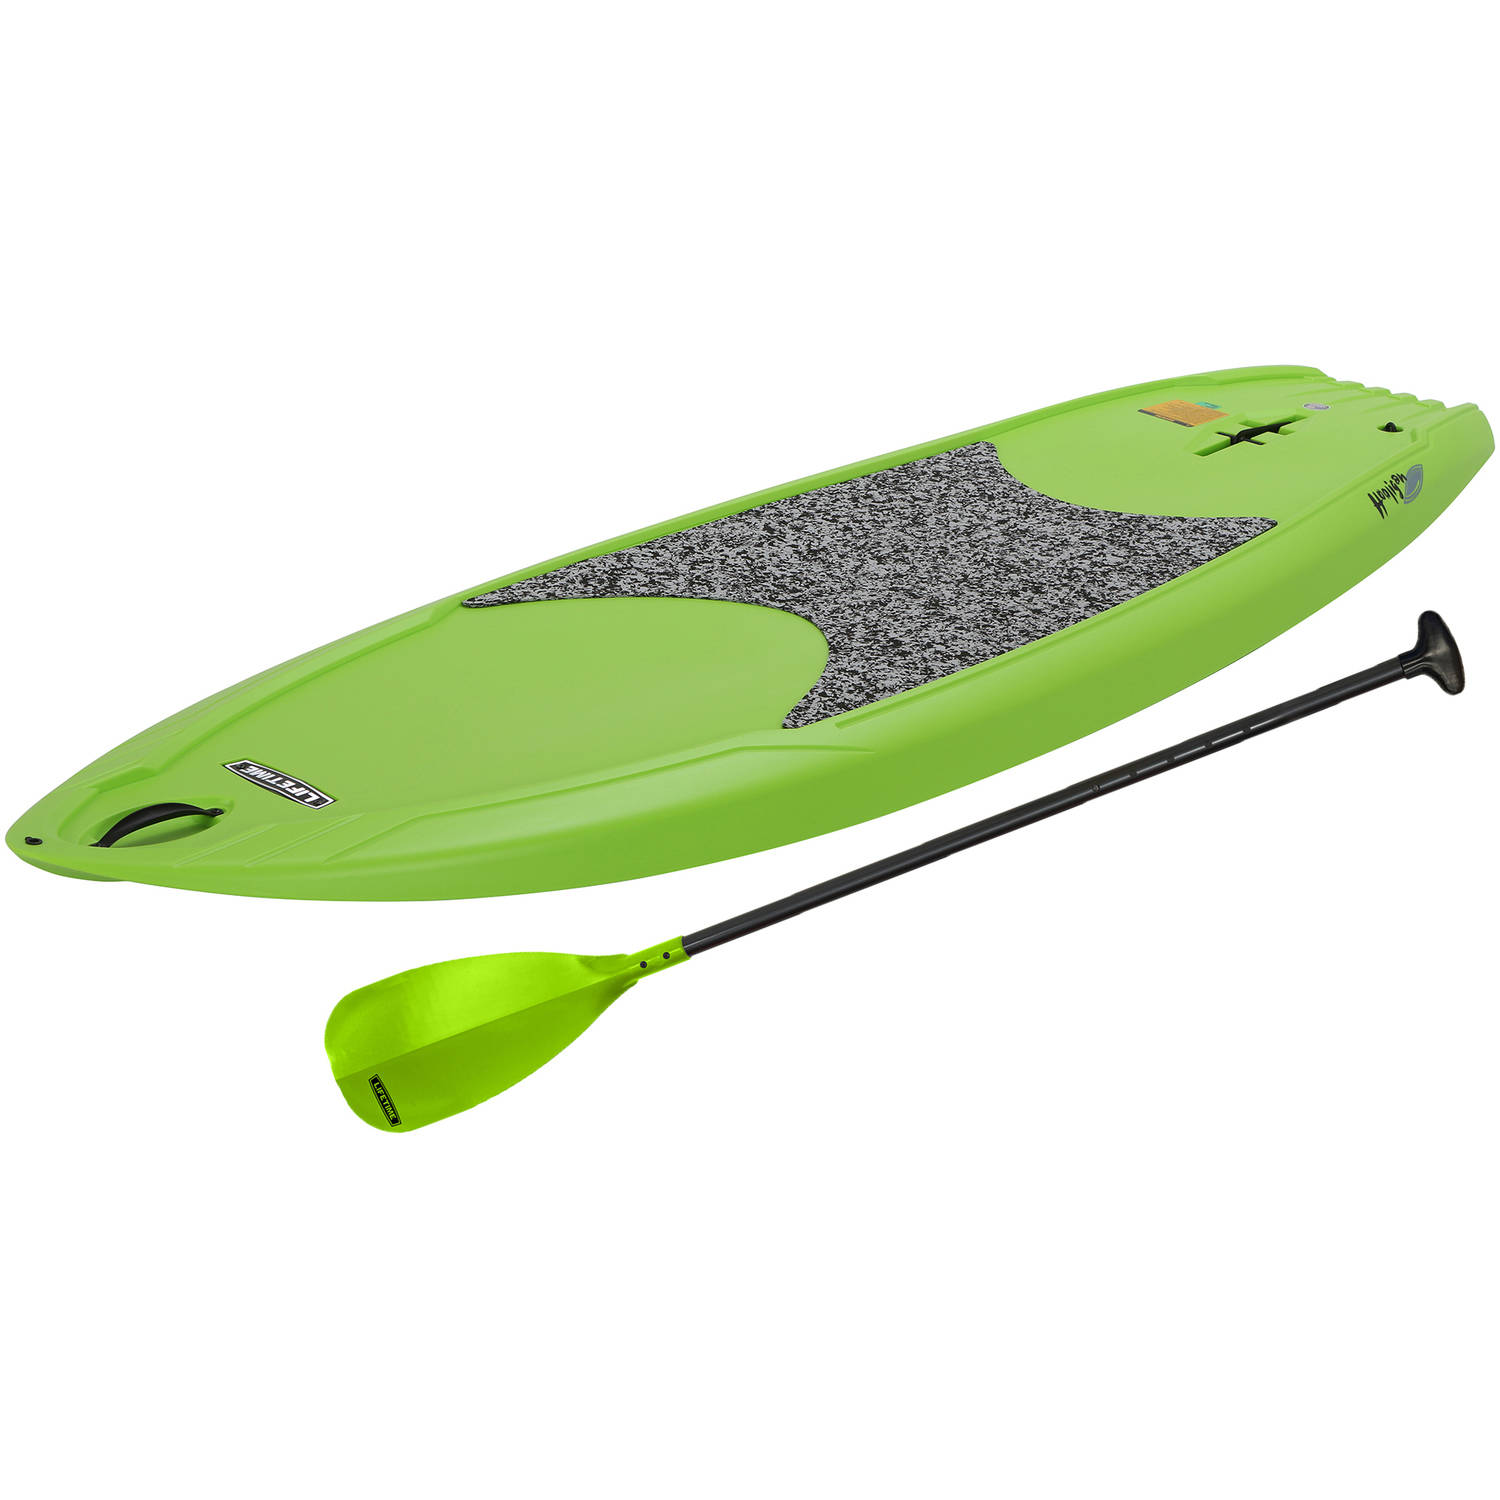 Lifetime Hooligan Youth Paddleboard, Lime by Lifetime